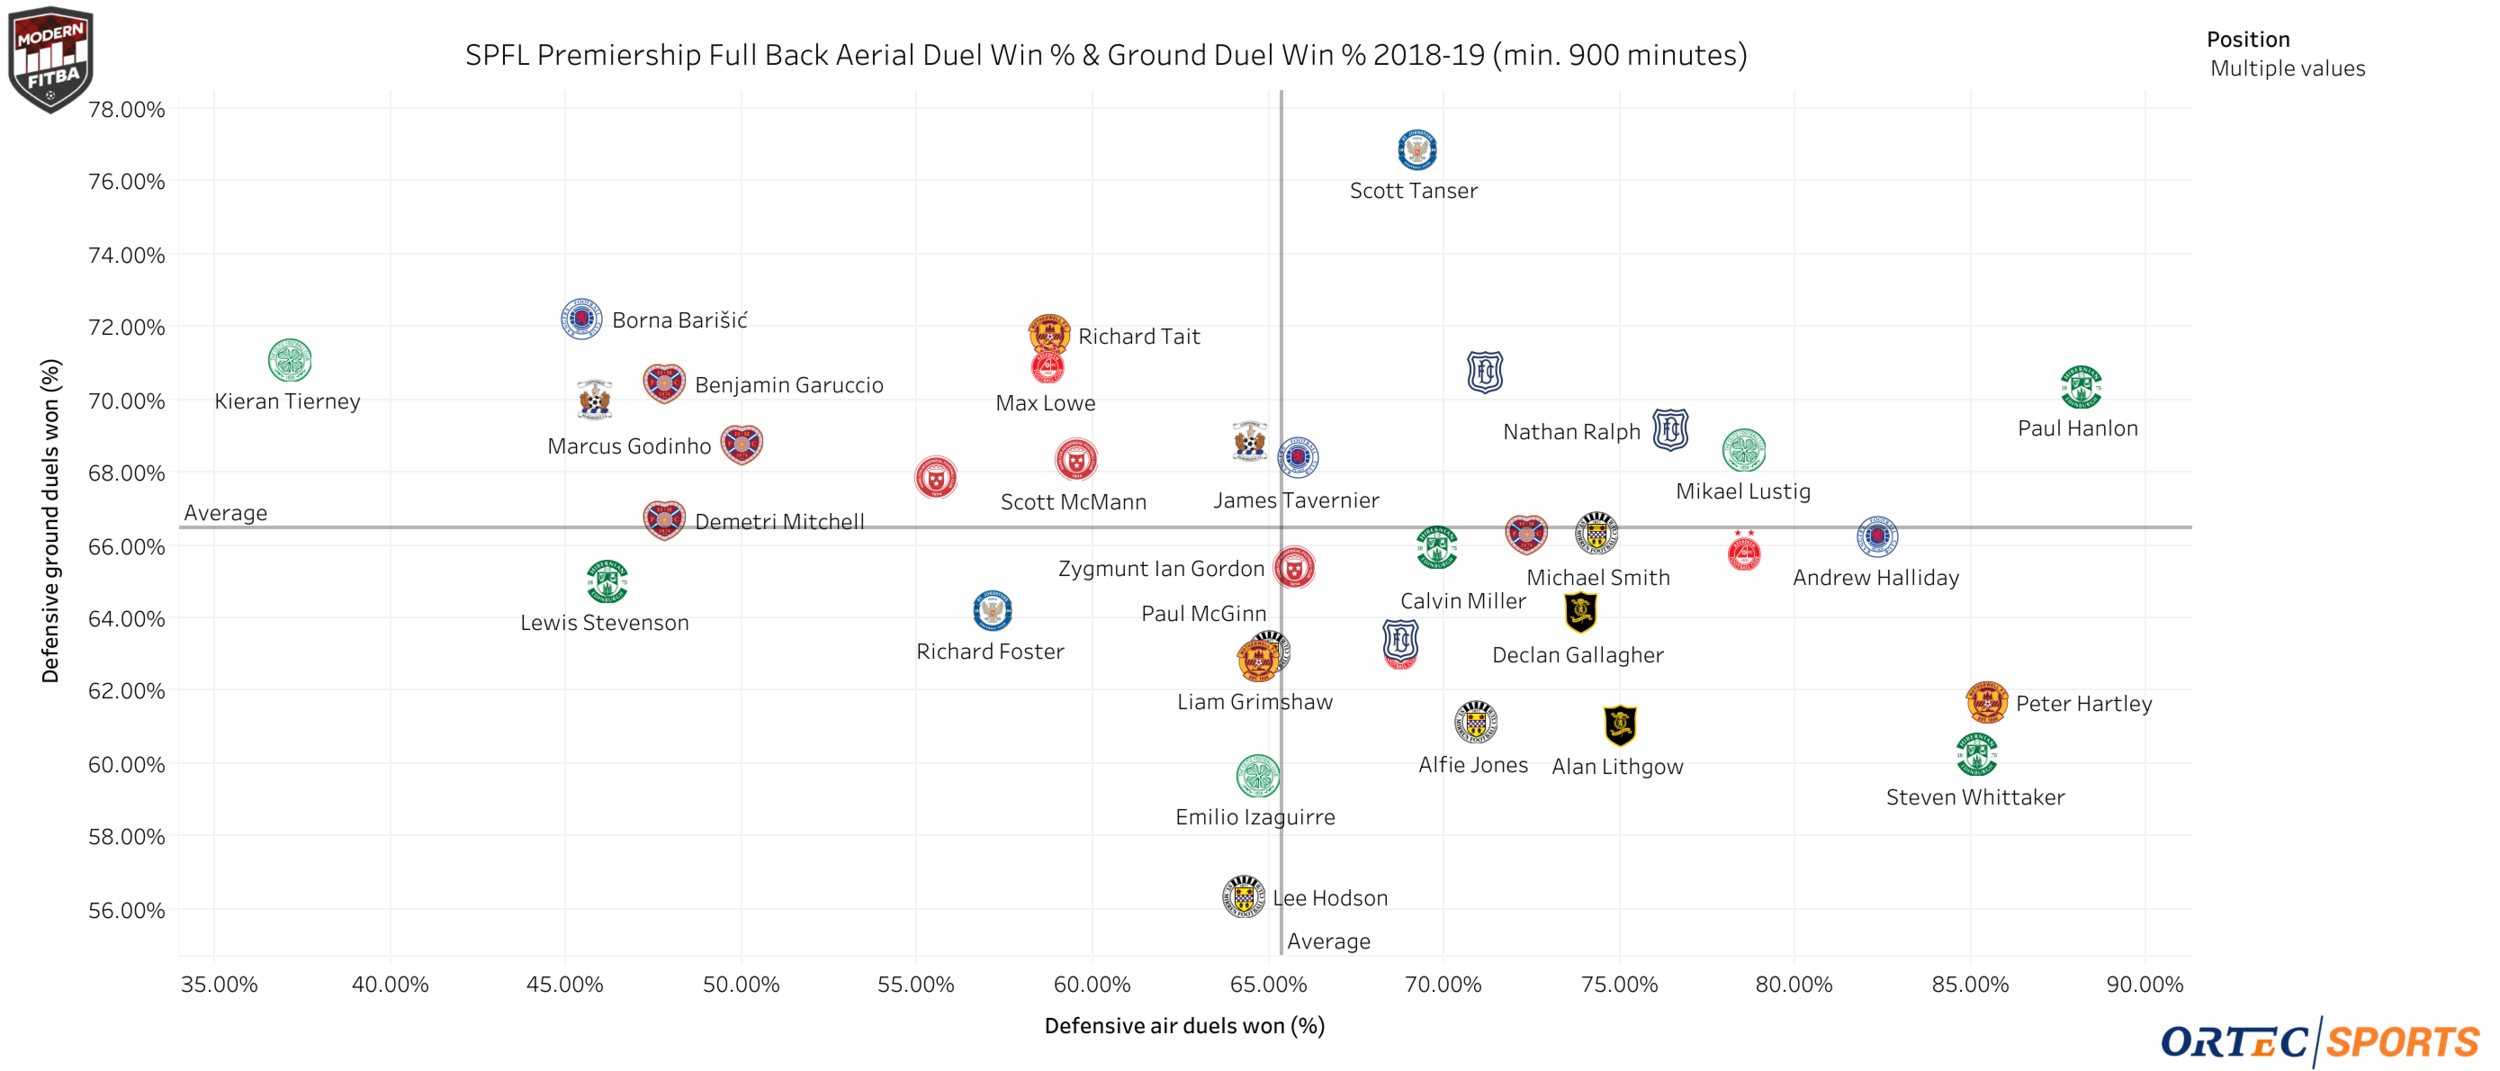 Defensive air duels win % and defensive ground duel win % for SPFL Premiership fullbacks who have played at least 900 minutes.